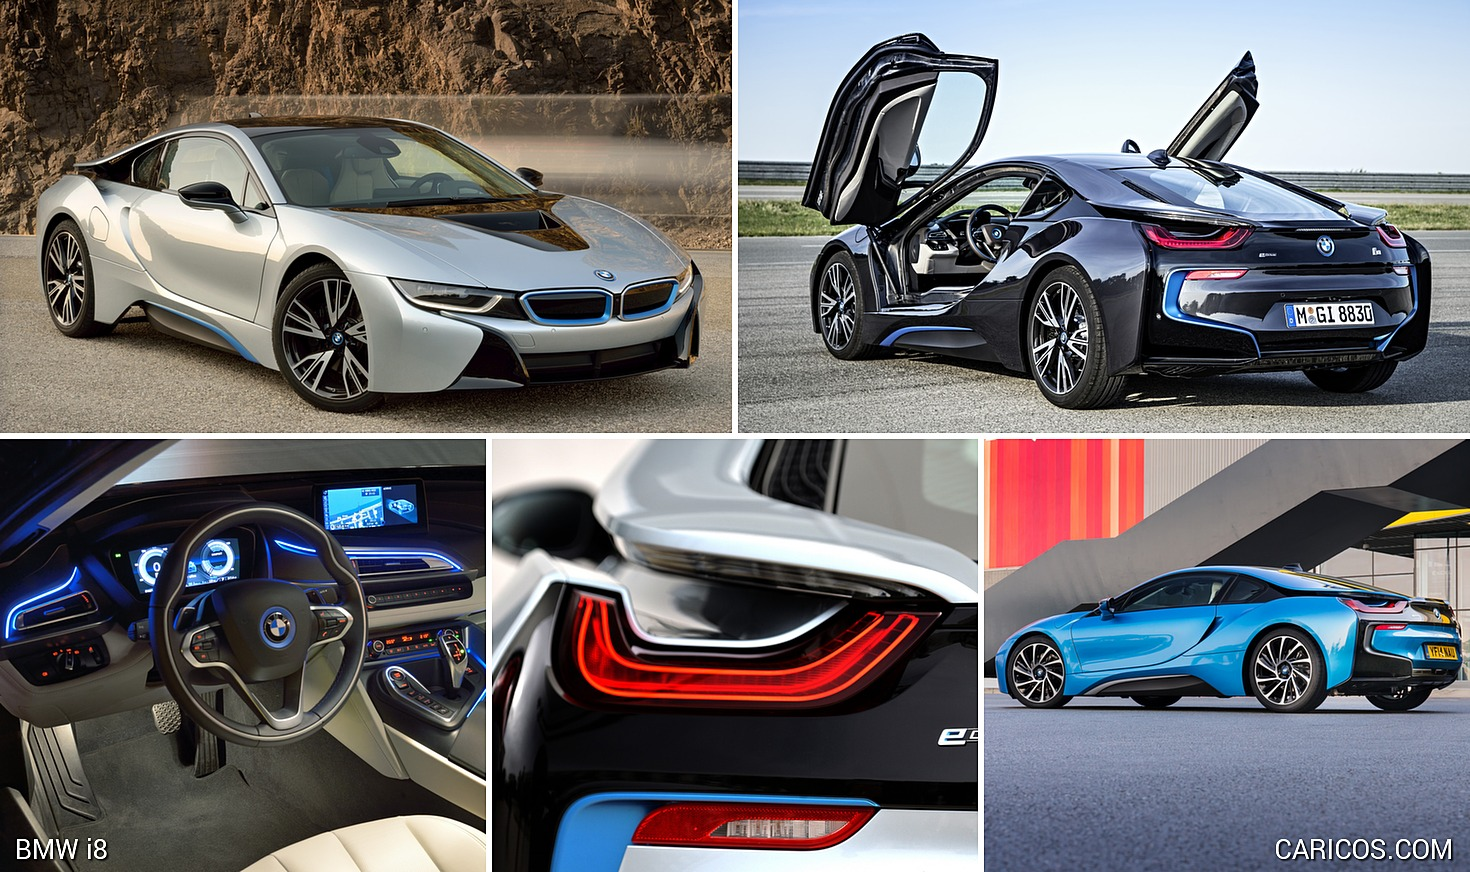 Bmw Series Coupe E further Maxresdefault together with Bmw I Empty Charge Socket together with Bmw I Facelift Heading Ever Nearer To Production likewise Nissan X Trail Frankfurt Launch. on bmw i8 engine